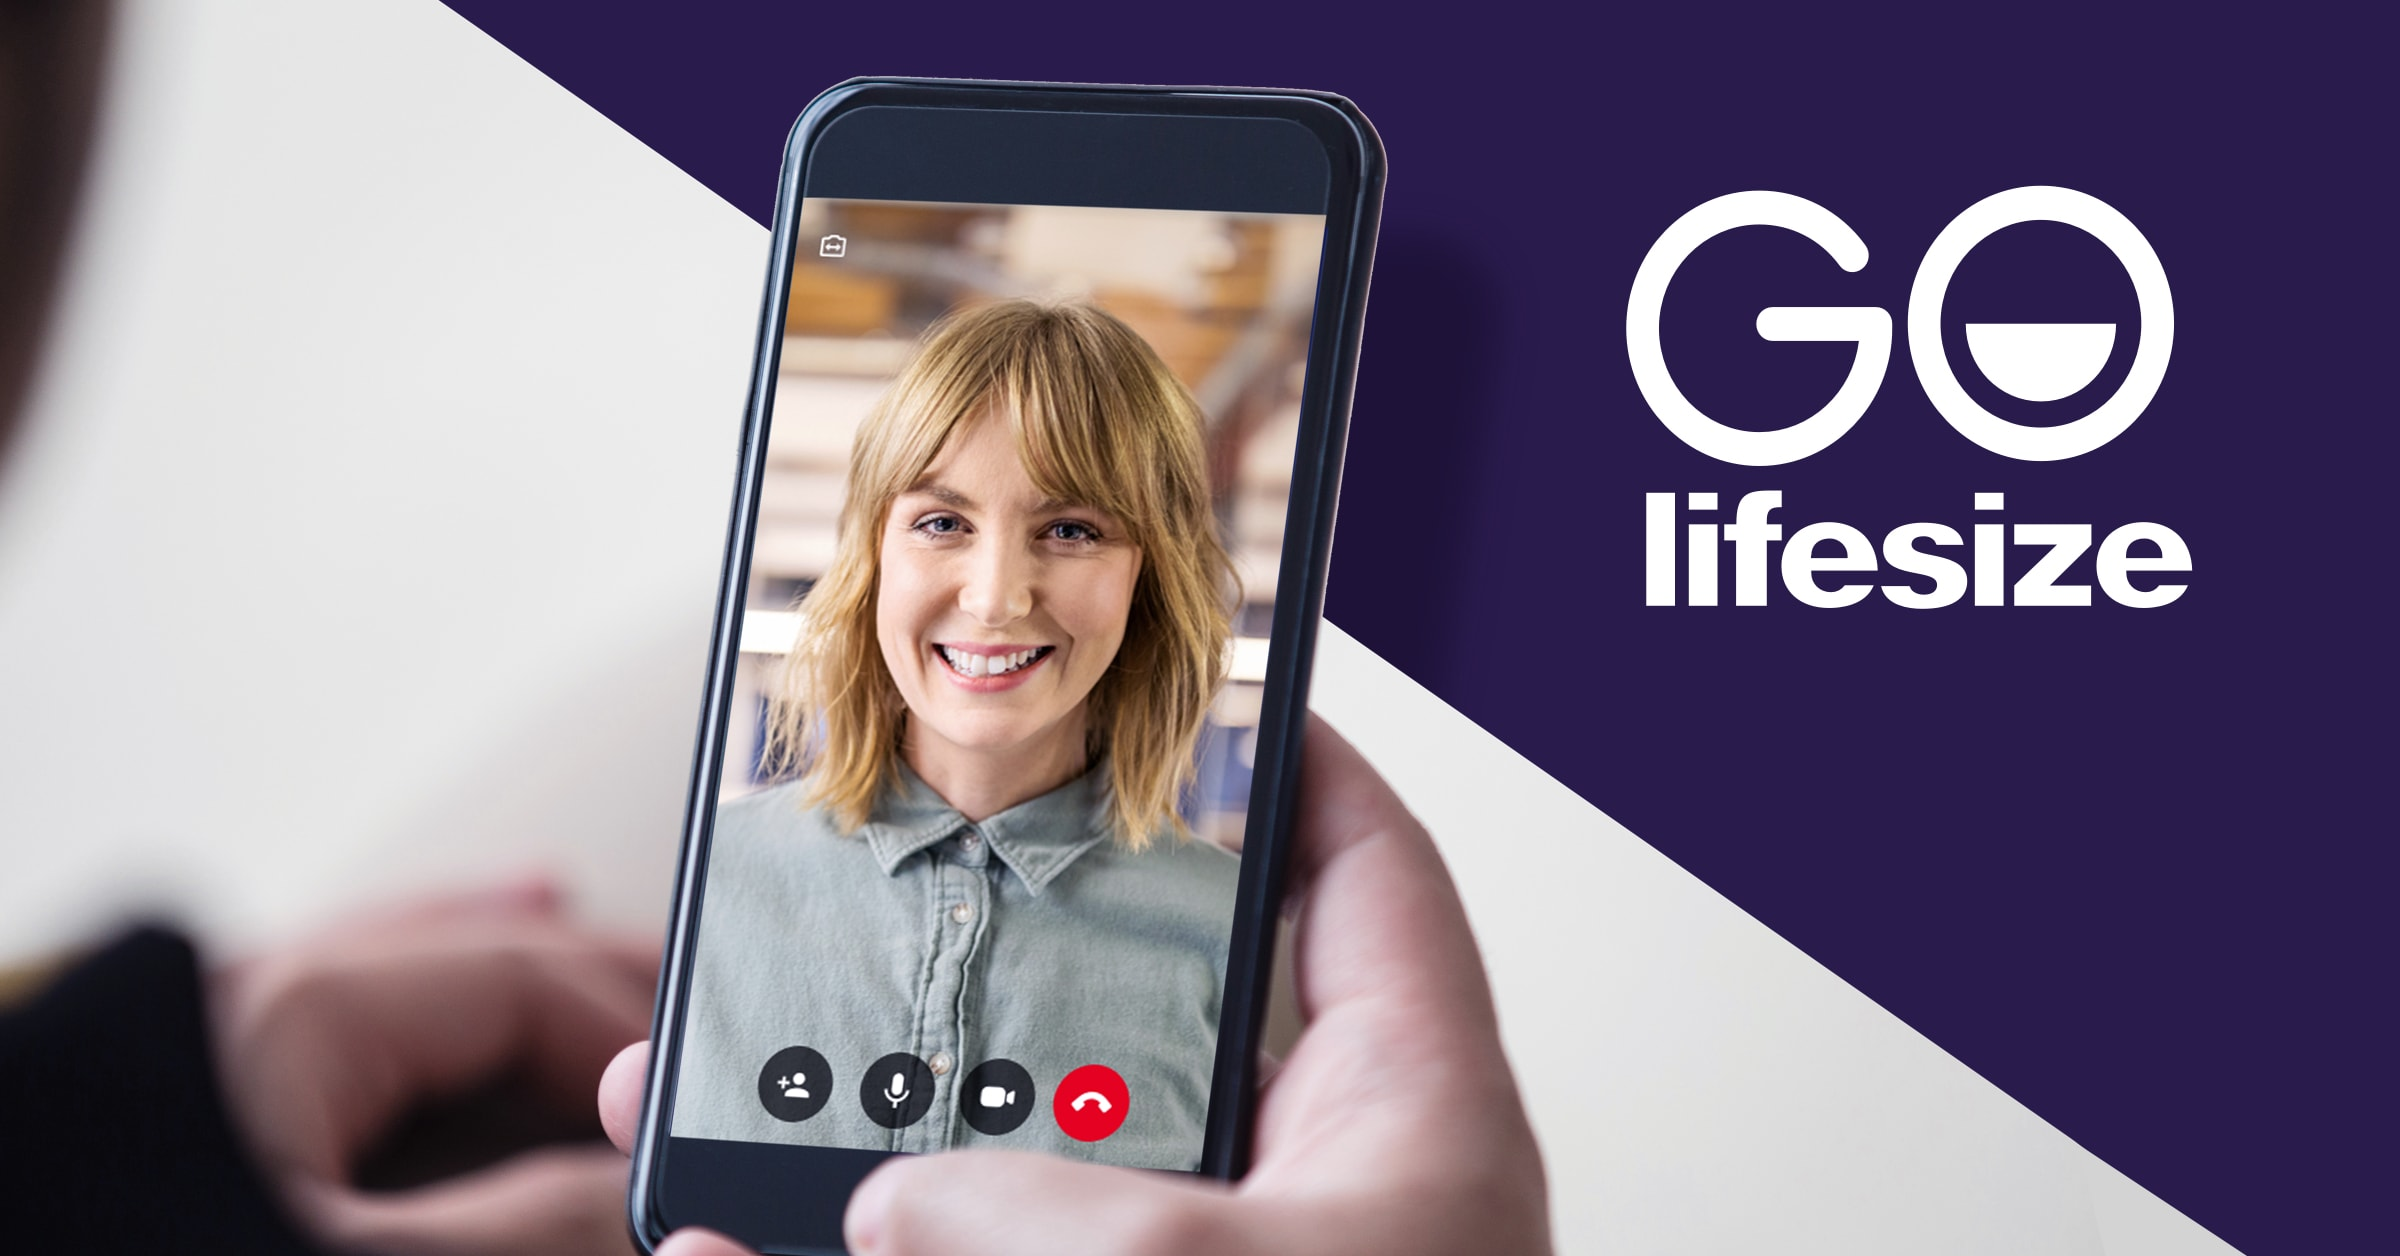 With Lifesize Go, it has never been easier to collaborate one-to-one or with small groups.